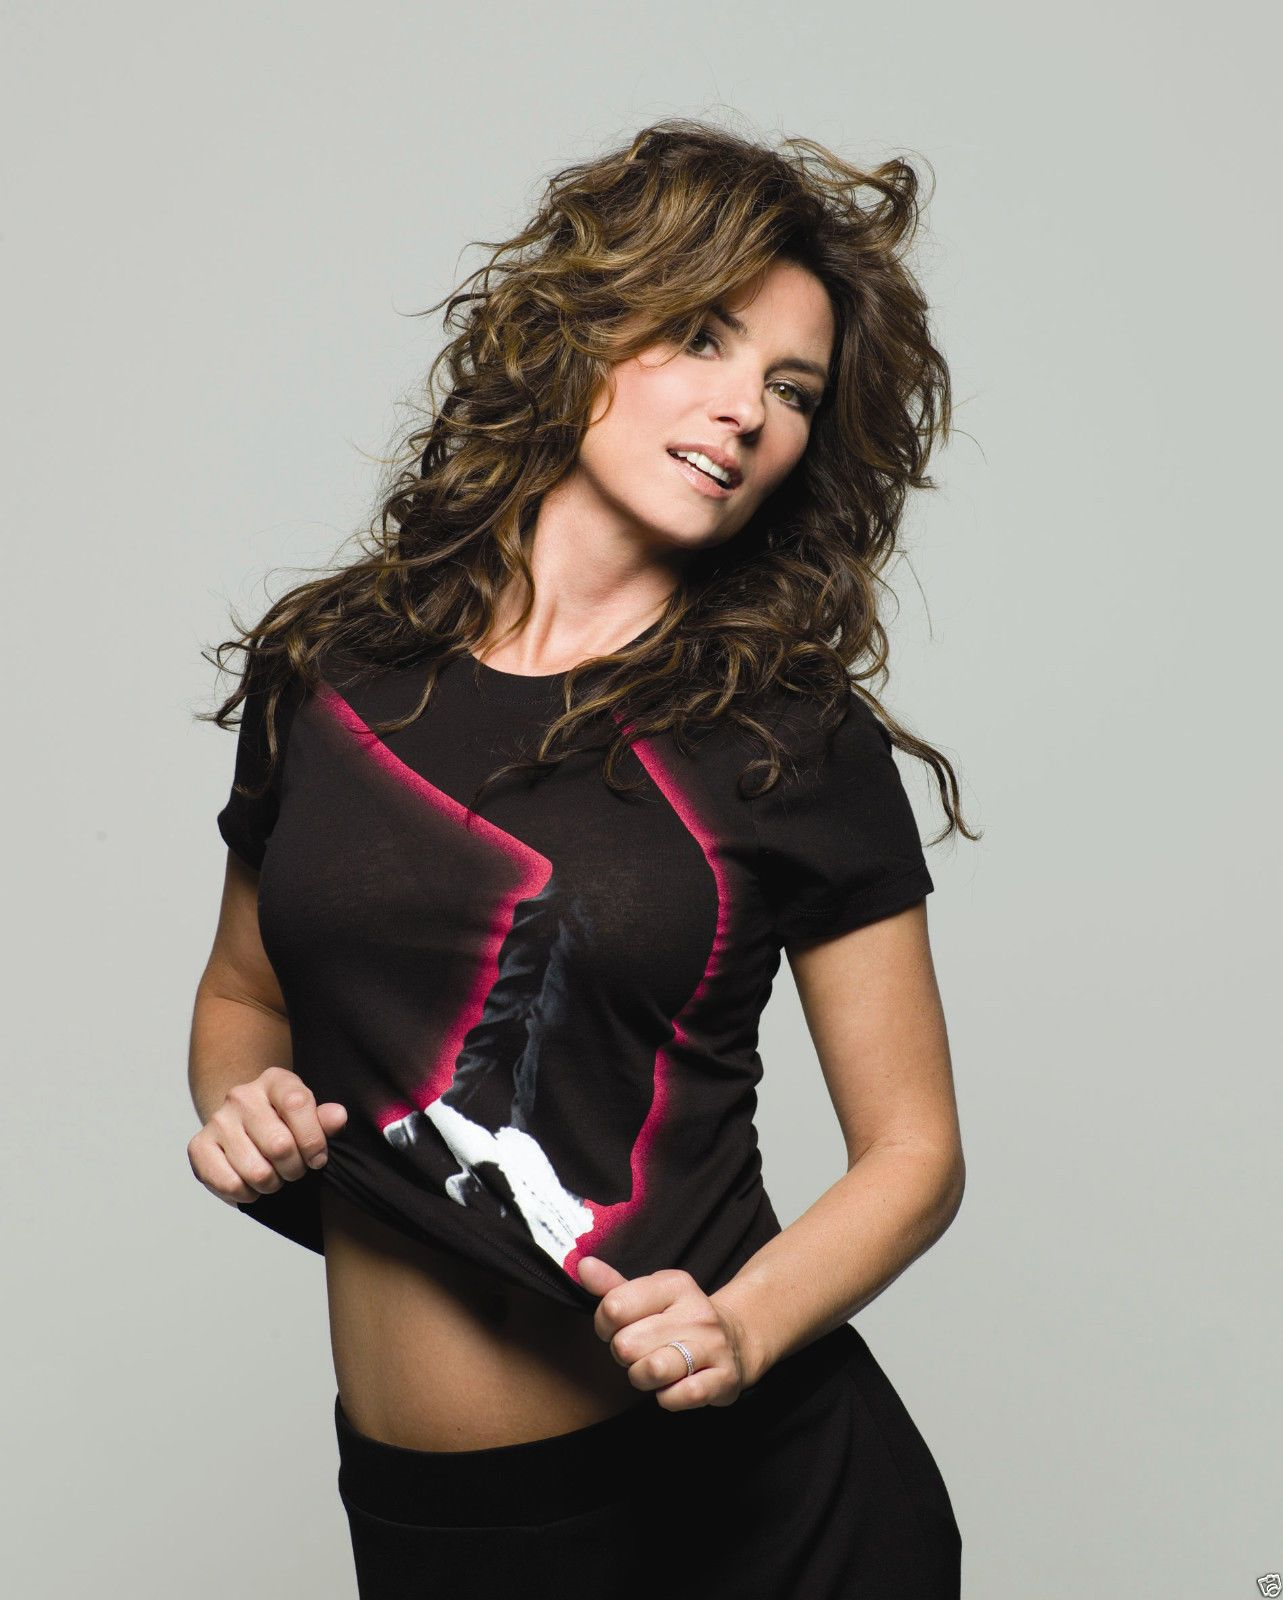 Shania Twain Queen Of Pop Country Music During The 1990 S And Into The Early 2000 S Shania Twain Shania Twain Pictures Country Music